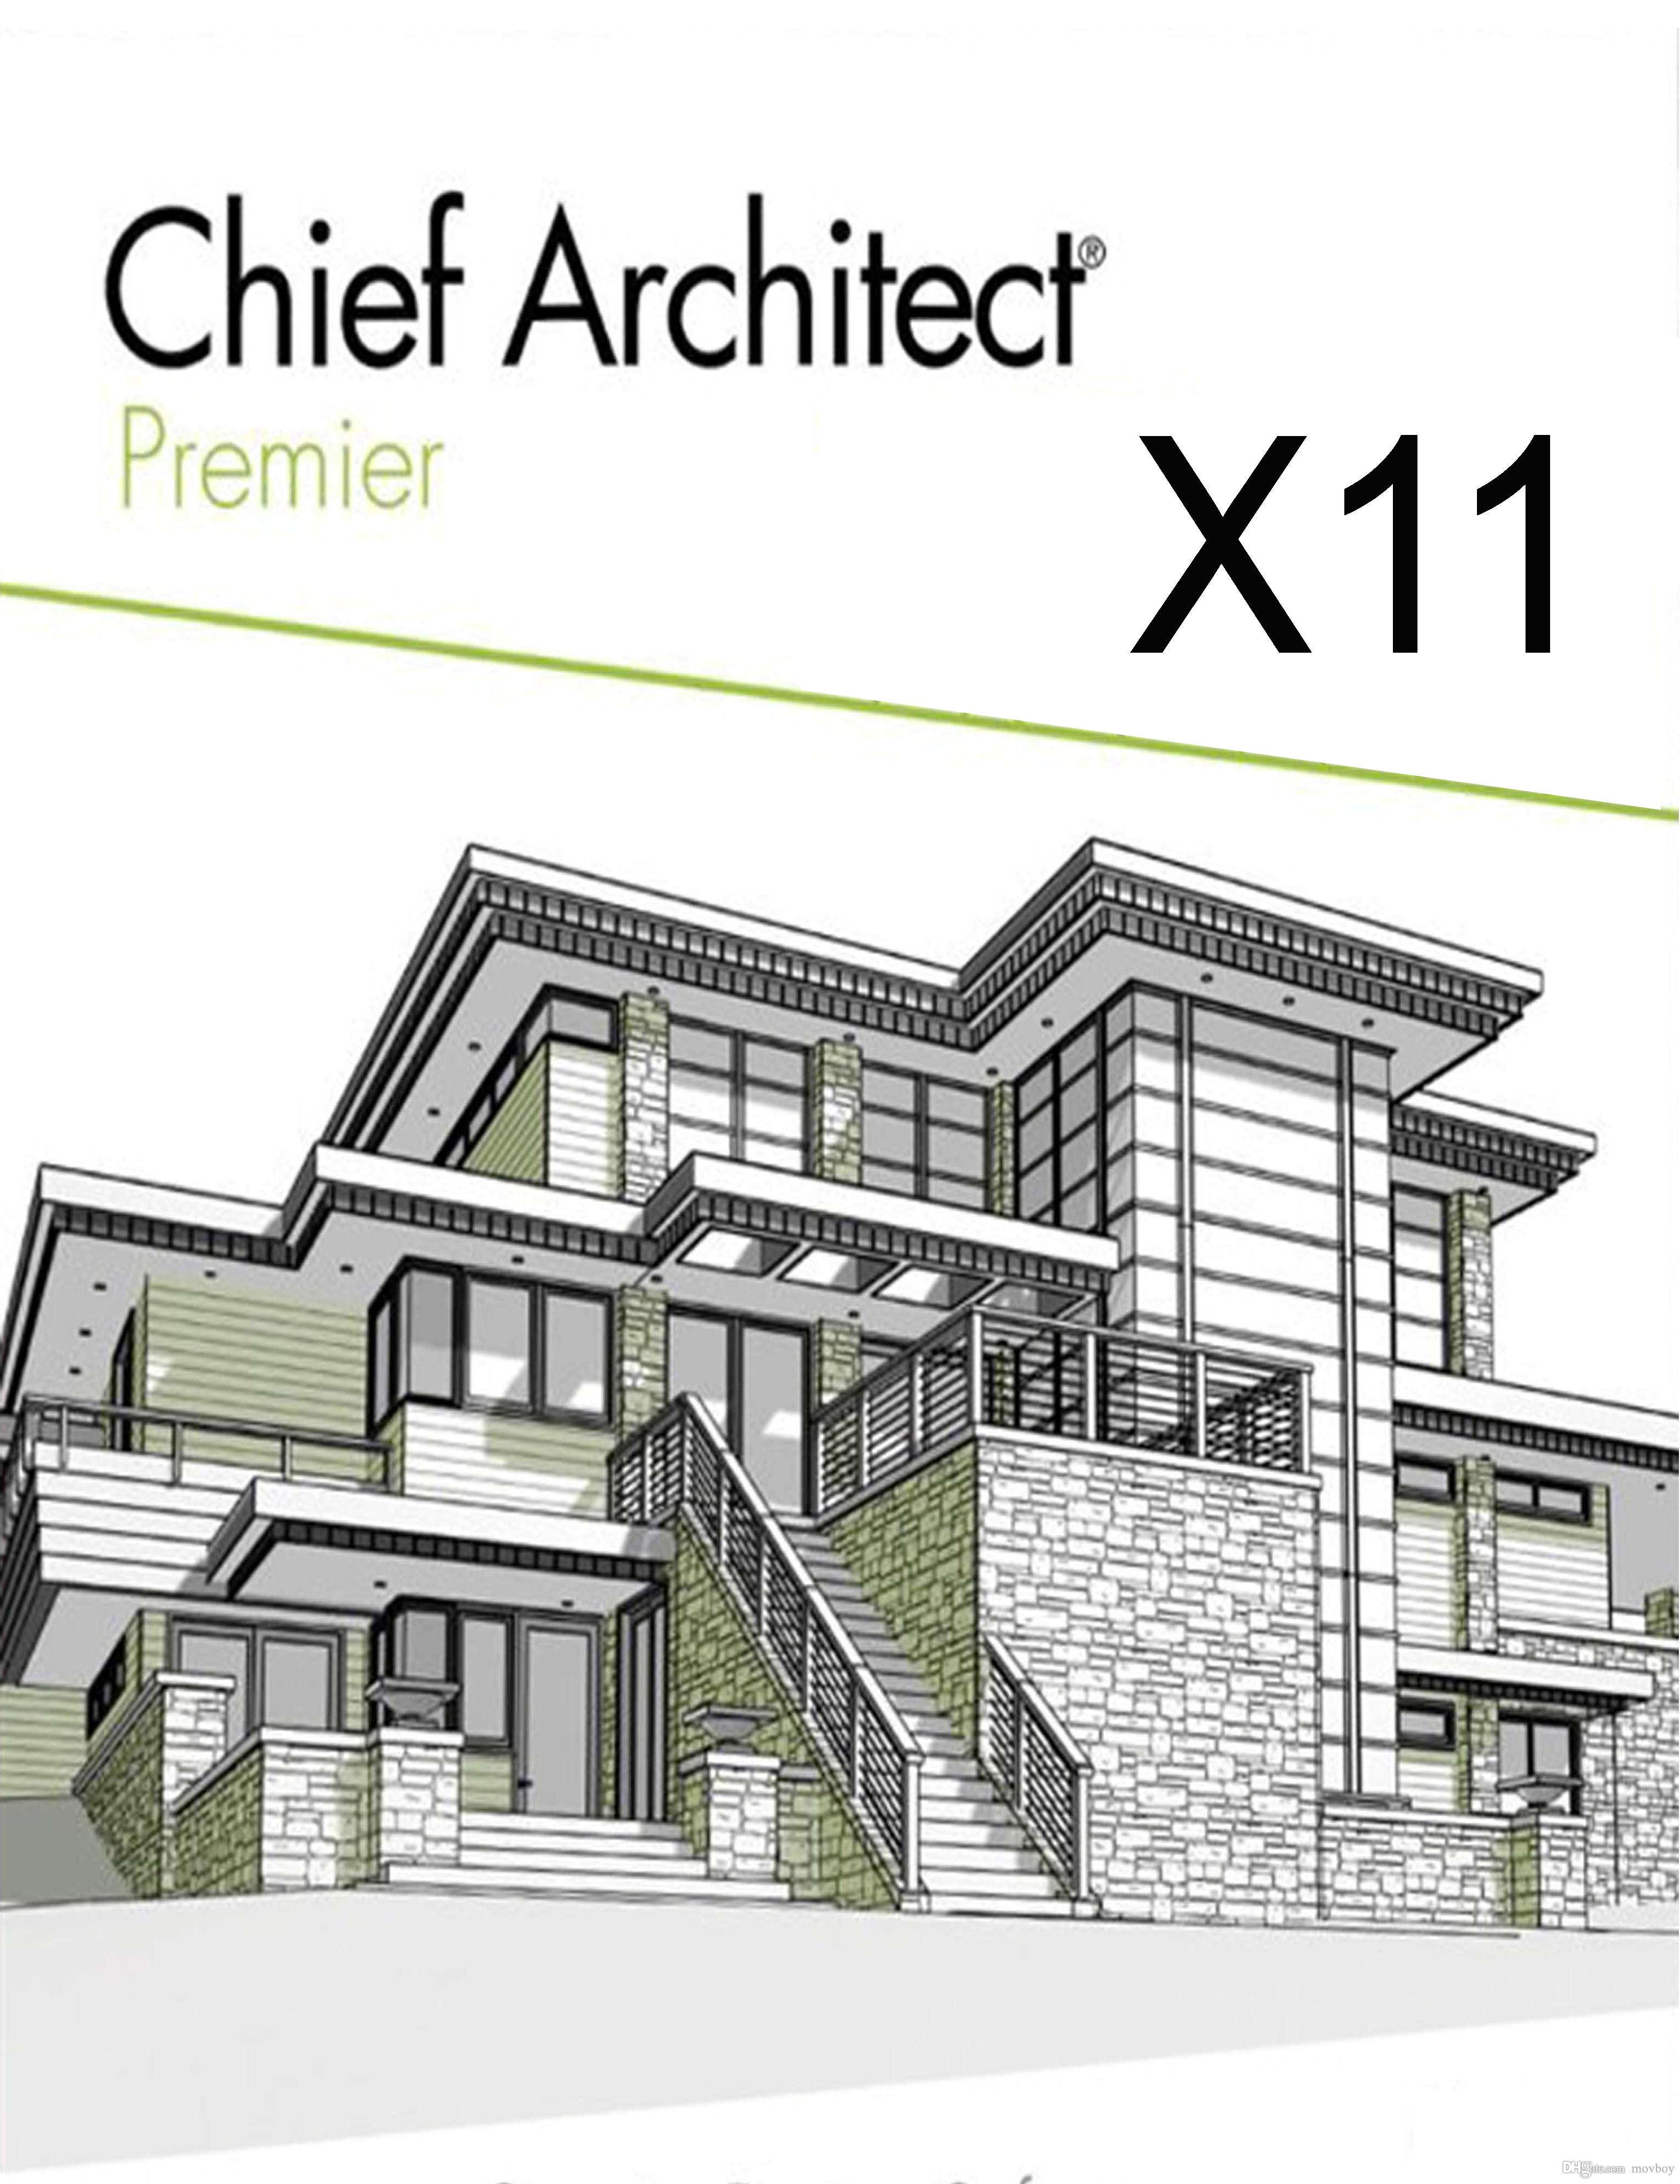 can i buy Chief Architect Premier for cheap